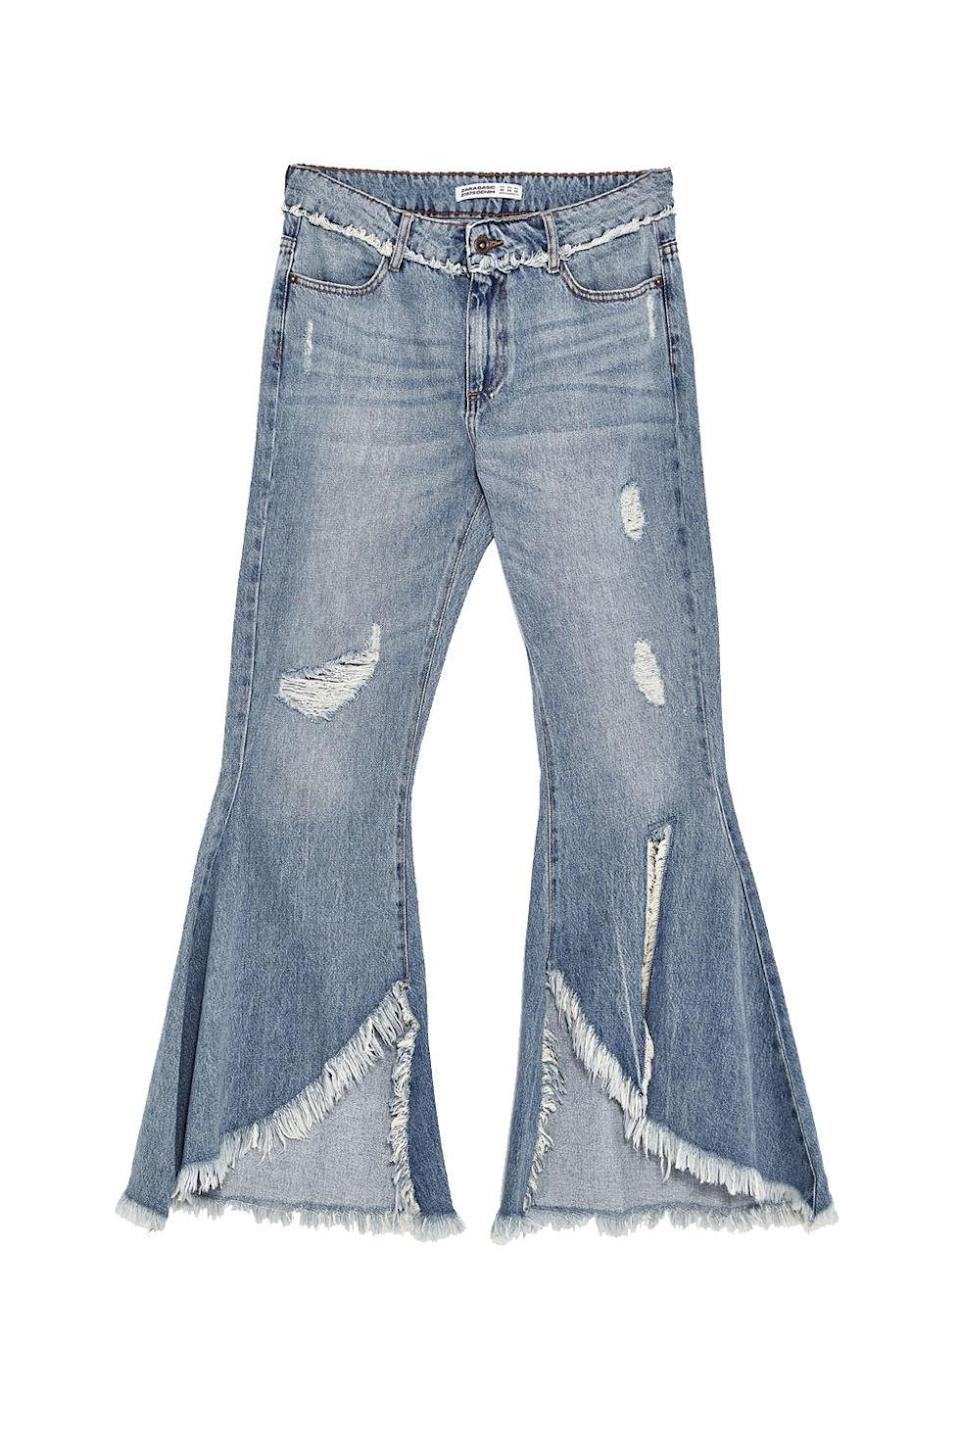 """<p>A slightly less extra version of the jeans in the main pic. </p><p><strong>BUY IT:</strong> Zara, $50; <a href=""""https://www.zara.com/us/en/woman/jeans/view-all/mid-rise-frayed-jeans-c719019p4661614.html"""" rel=""""nofollow noopener"""" target=""""_blank"""" data-ylk=""""slk:zara.com"""" class=""""link rapid-noclick-resp"""">zara.com</a>.</p>"""